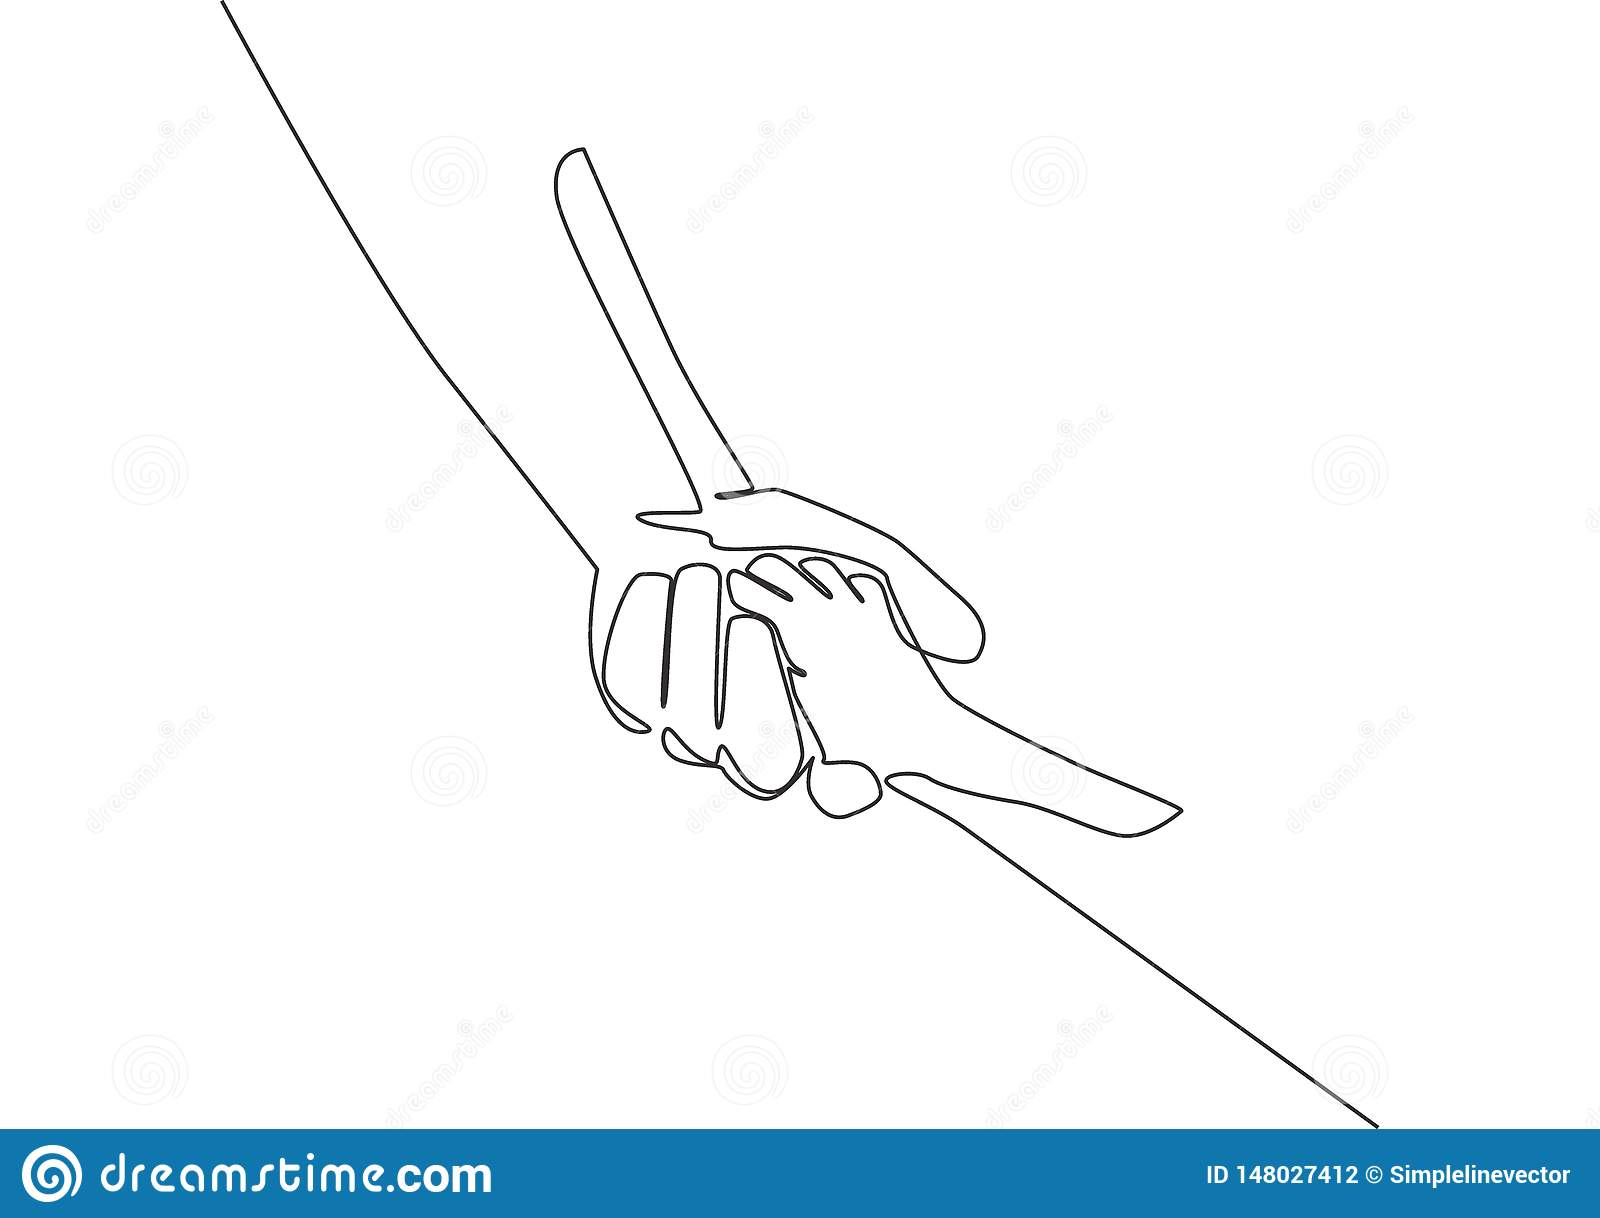 Single line draw of father giving hand to his child. Mother care in continuous line drawing design style